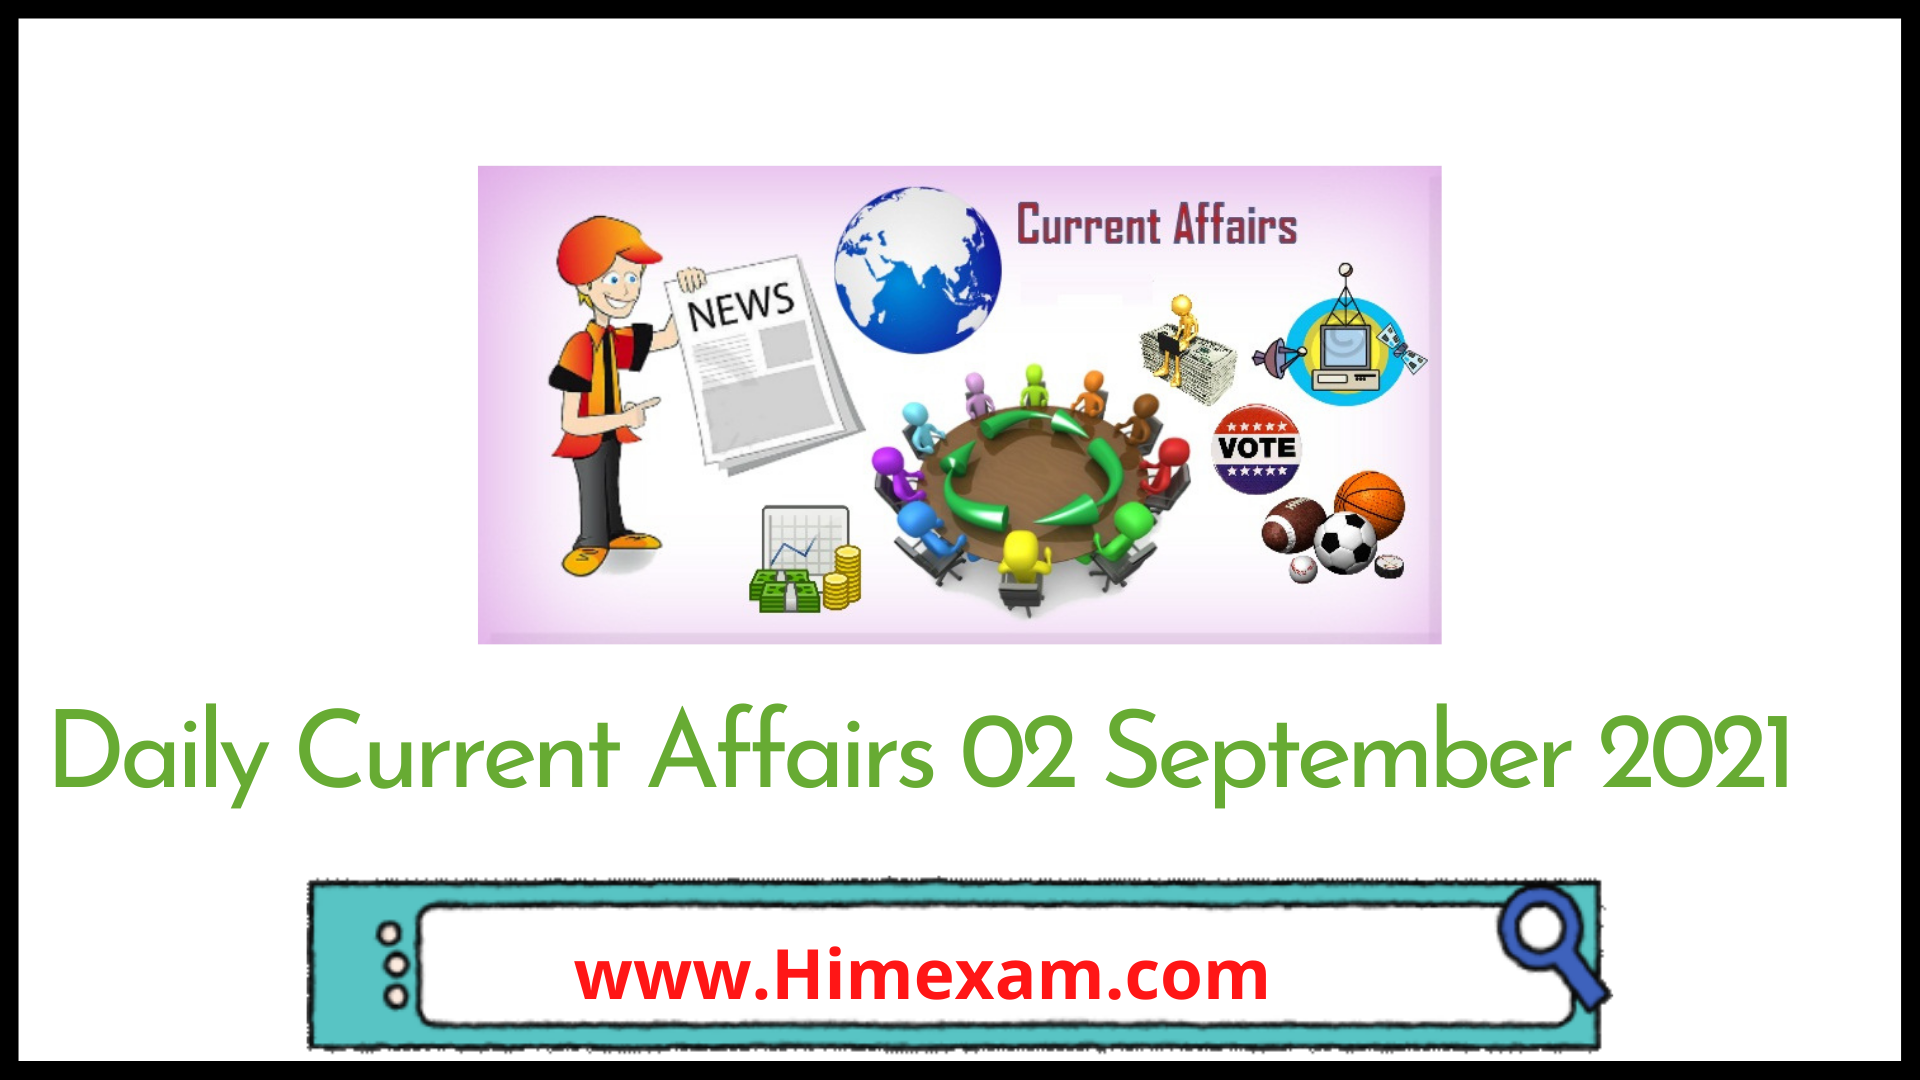 Daily Current Affairs 02 September 2021